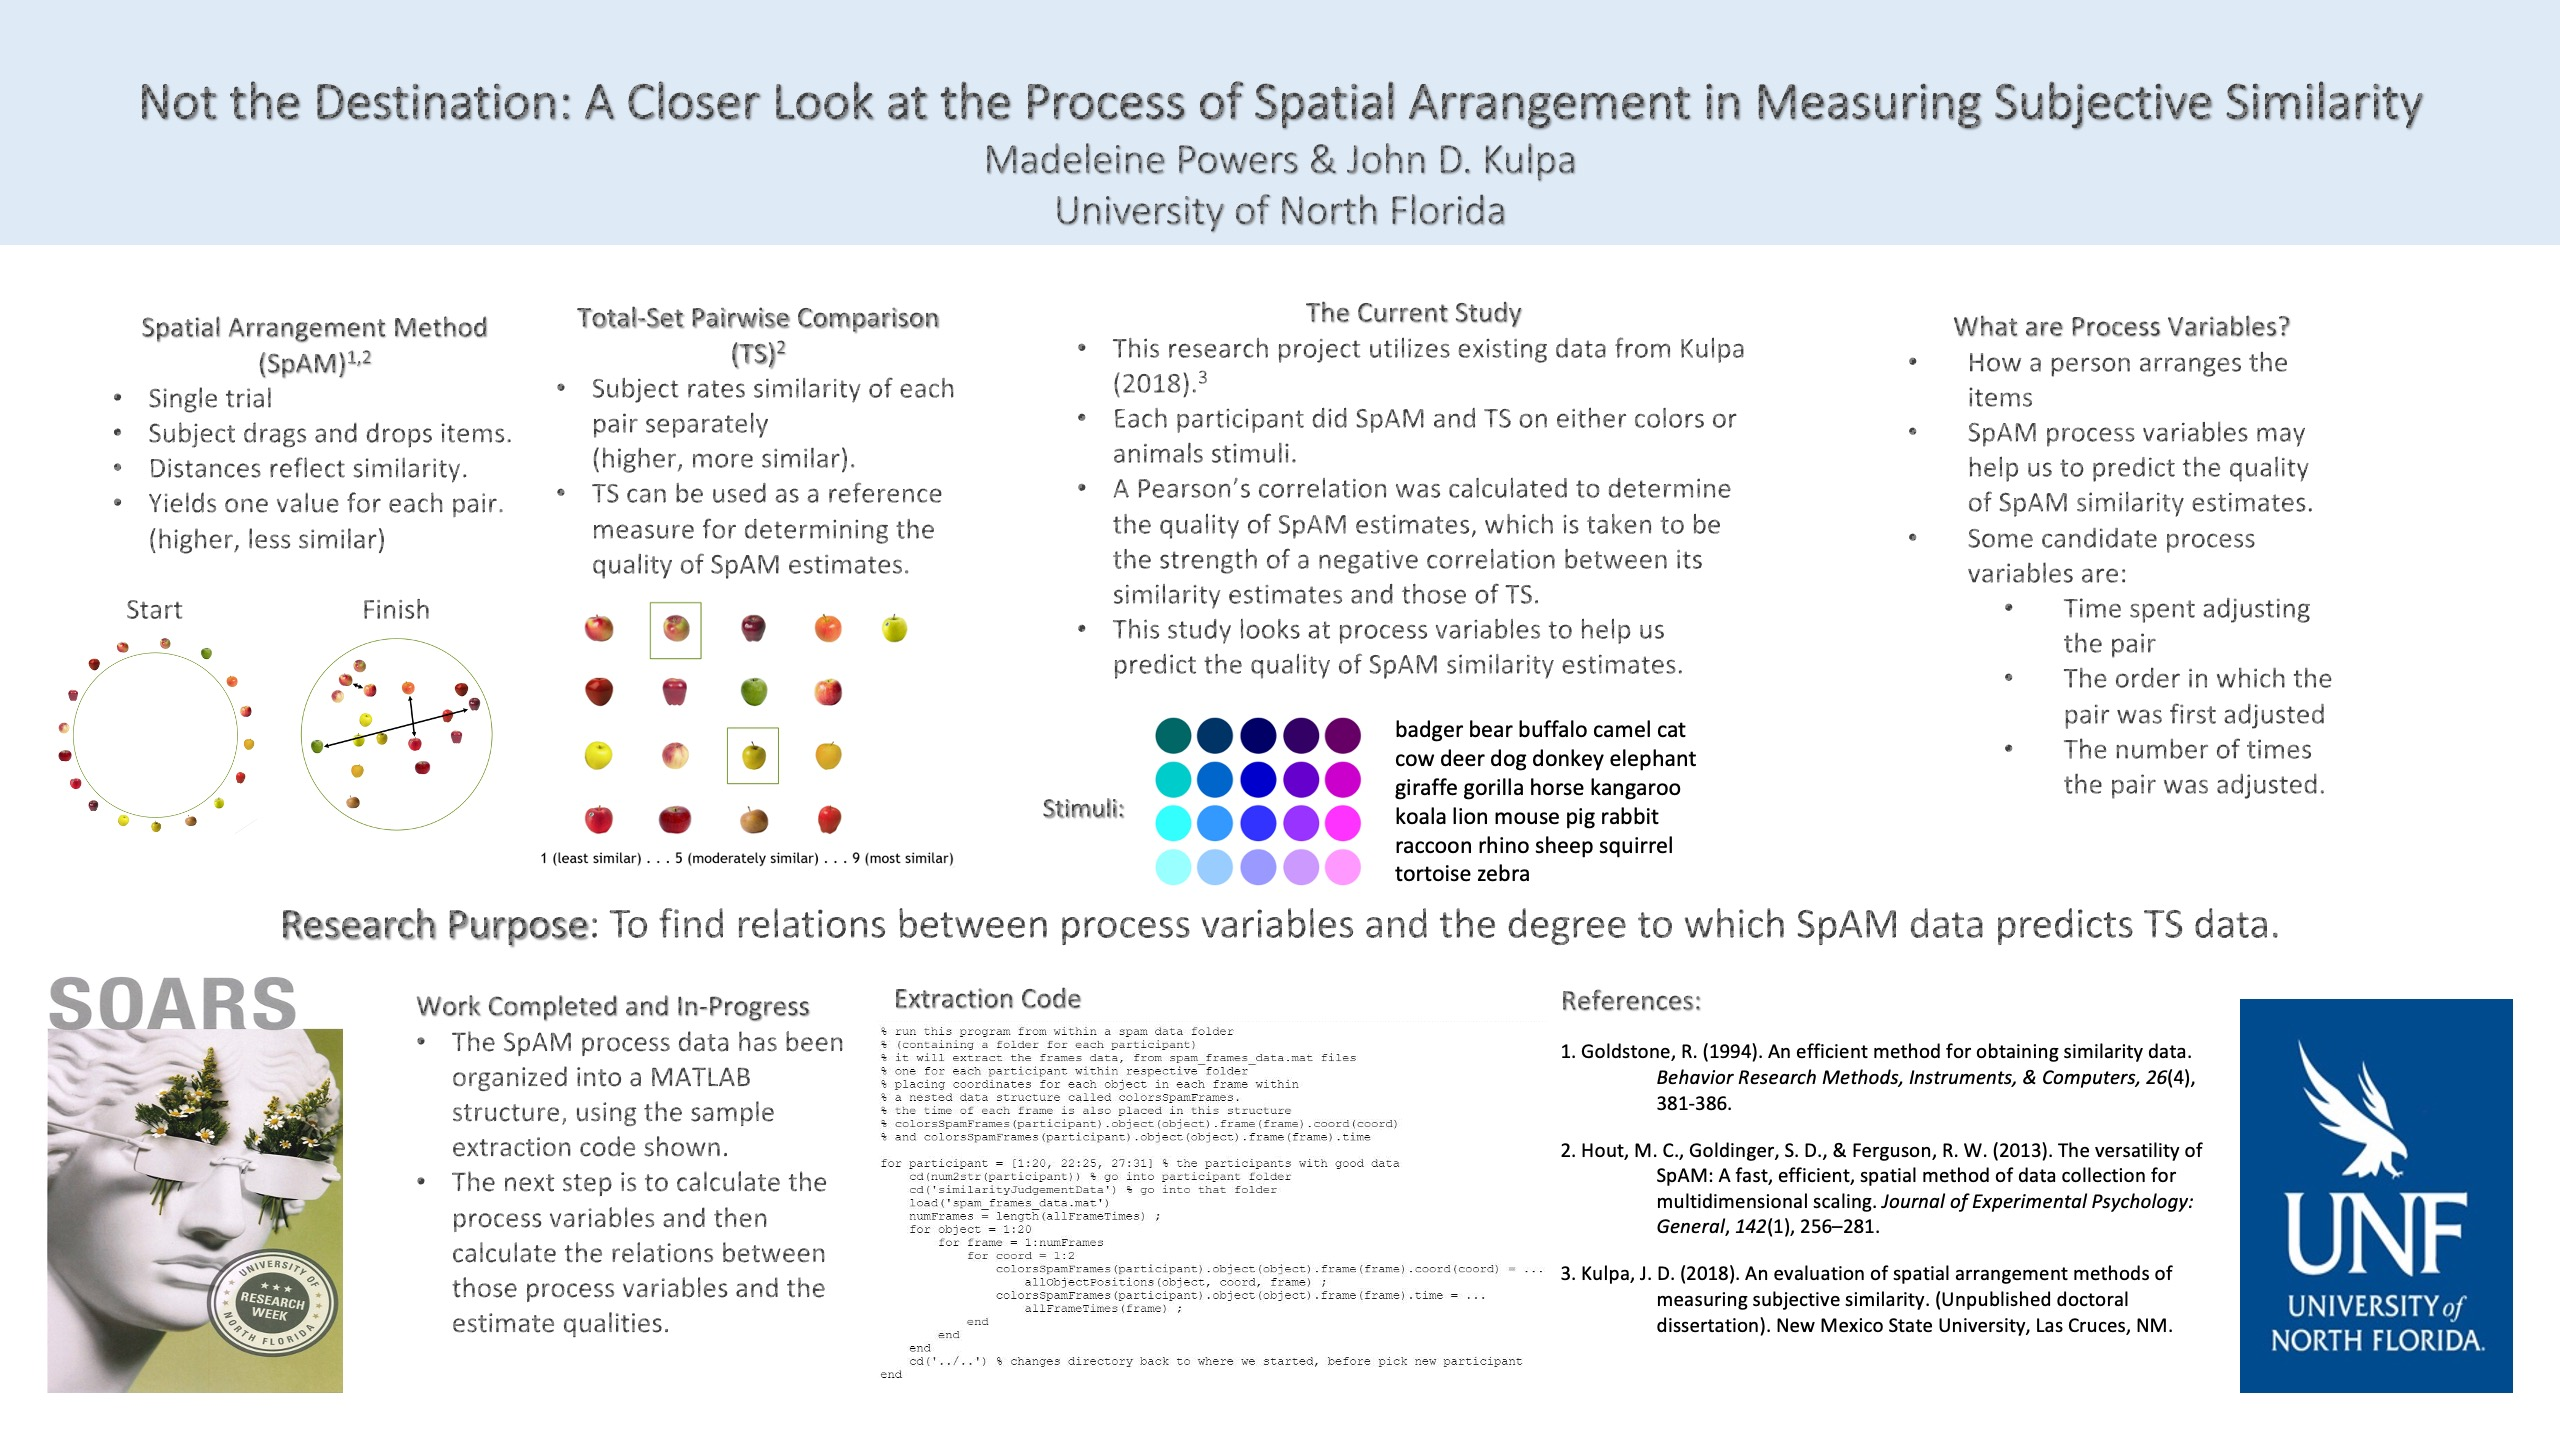 Not the Destination: A Closer Look at the Process of Spatial Arrangement in Measuring Subjective Similarity poster